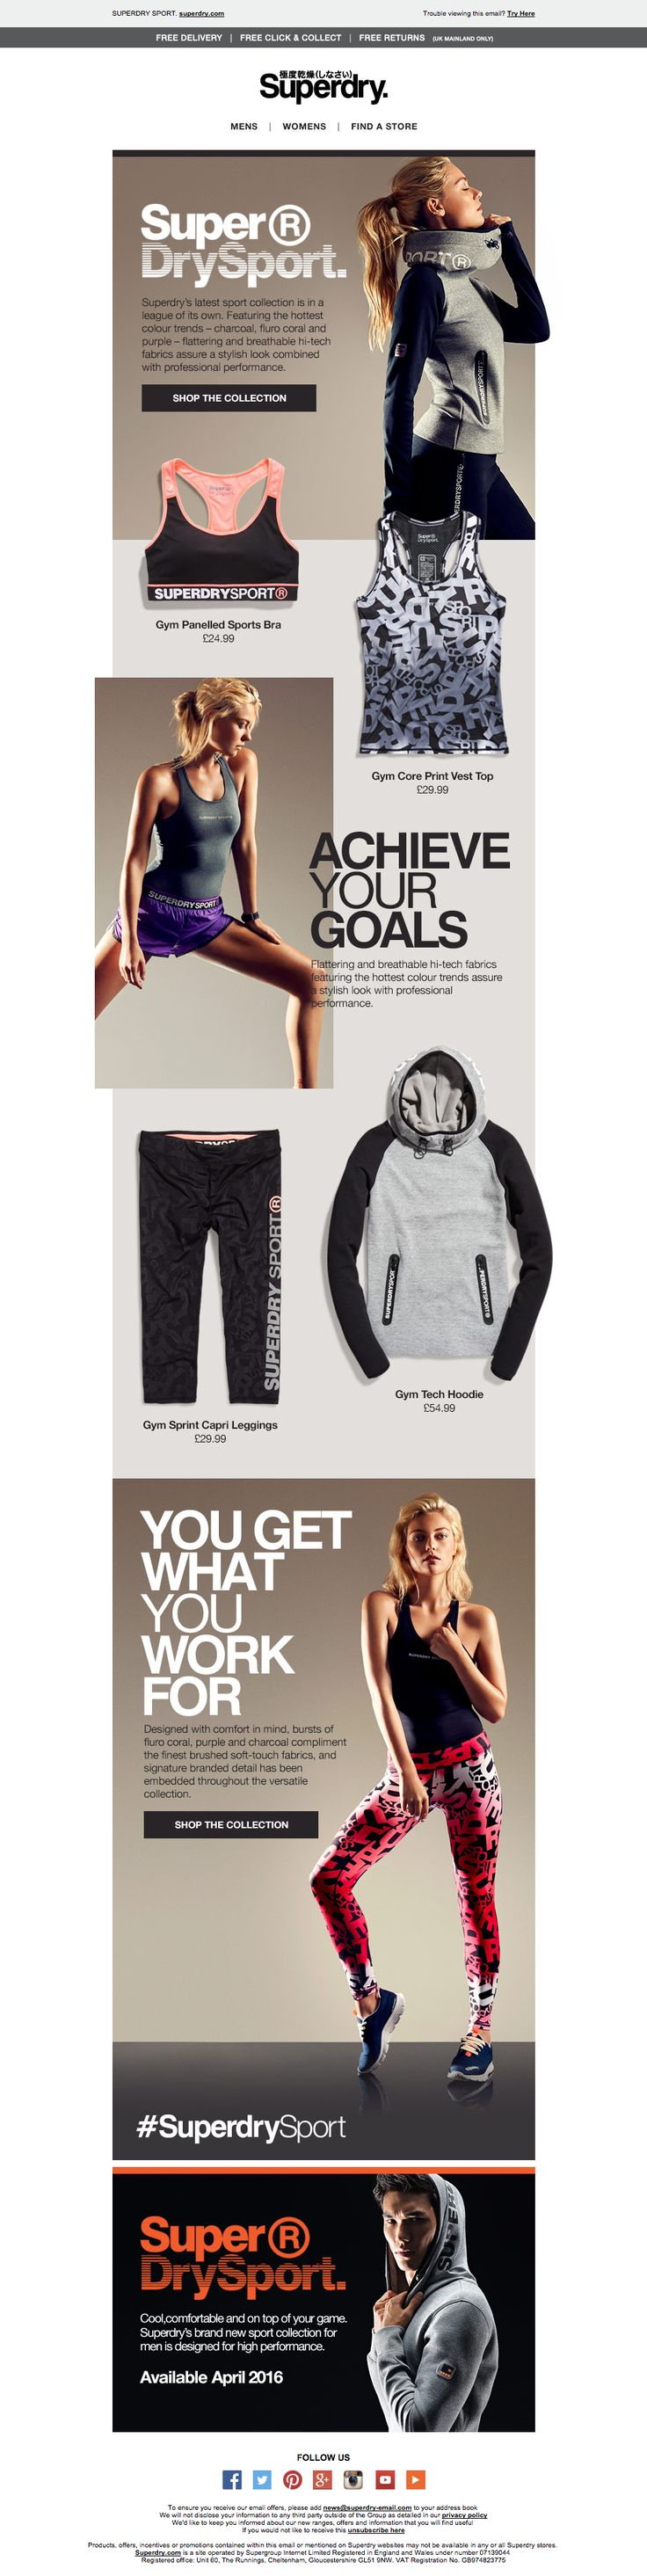 Superdry Sport Email / Newsletter Design                                                                                                                                                      More